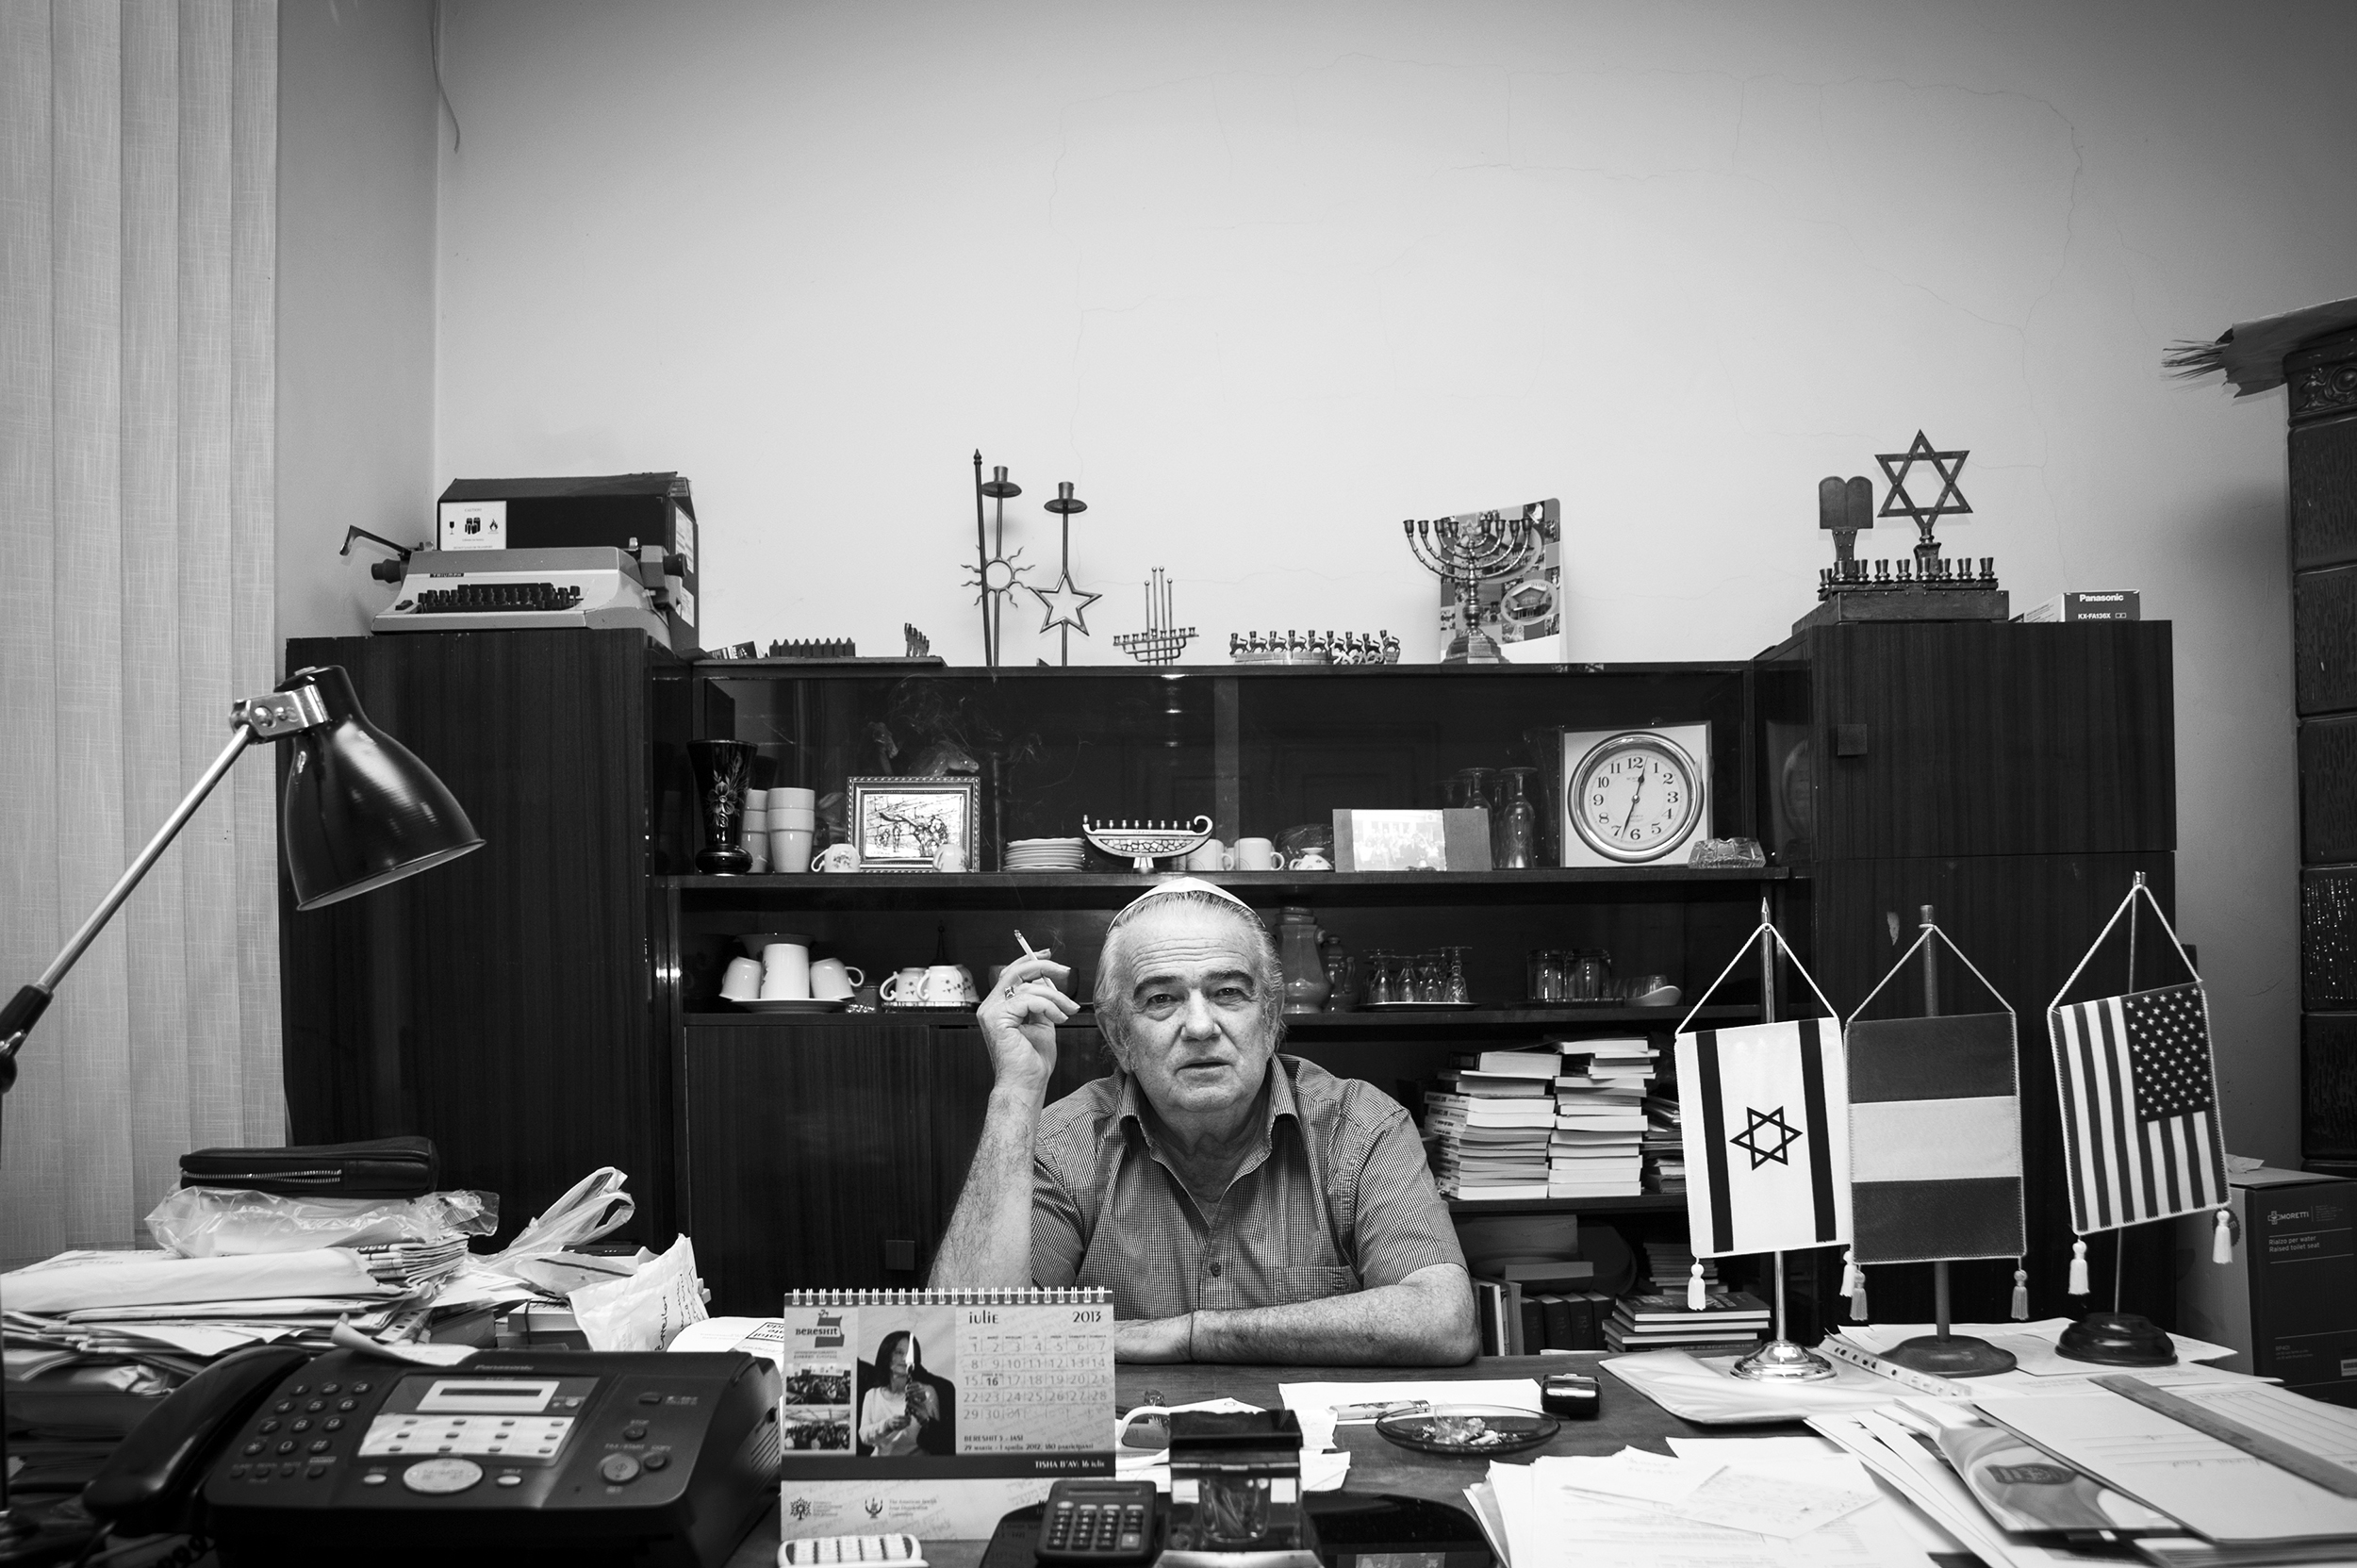 Teodor Koppelmann, President of the Jewish Community Center in Oradea, Romania, sits behind his cluttered desk where he often chains-mokes while overseeing the day-to-day business and attending to the needs of his community members on August 26, 2013.